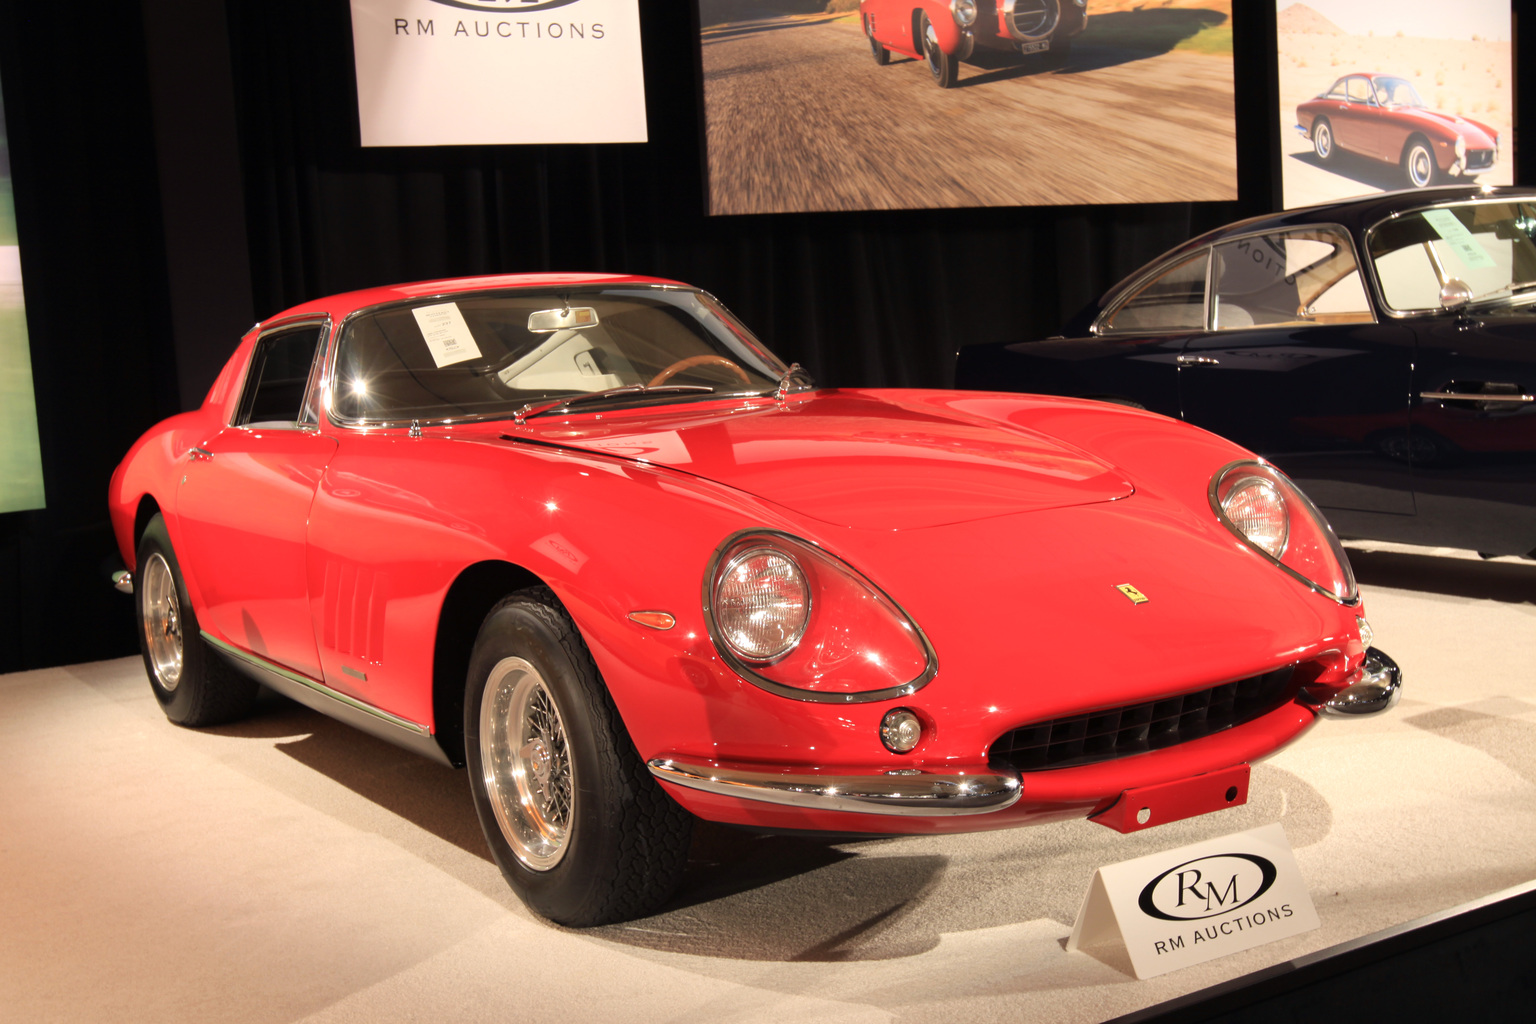 2014 Monterey by RM Auctions